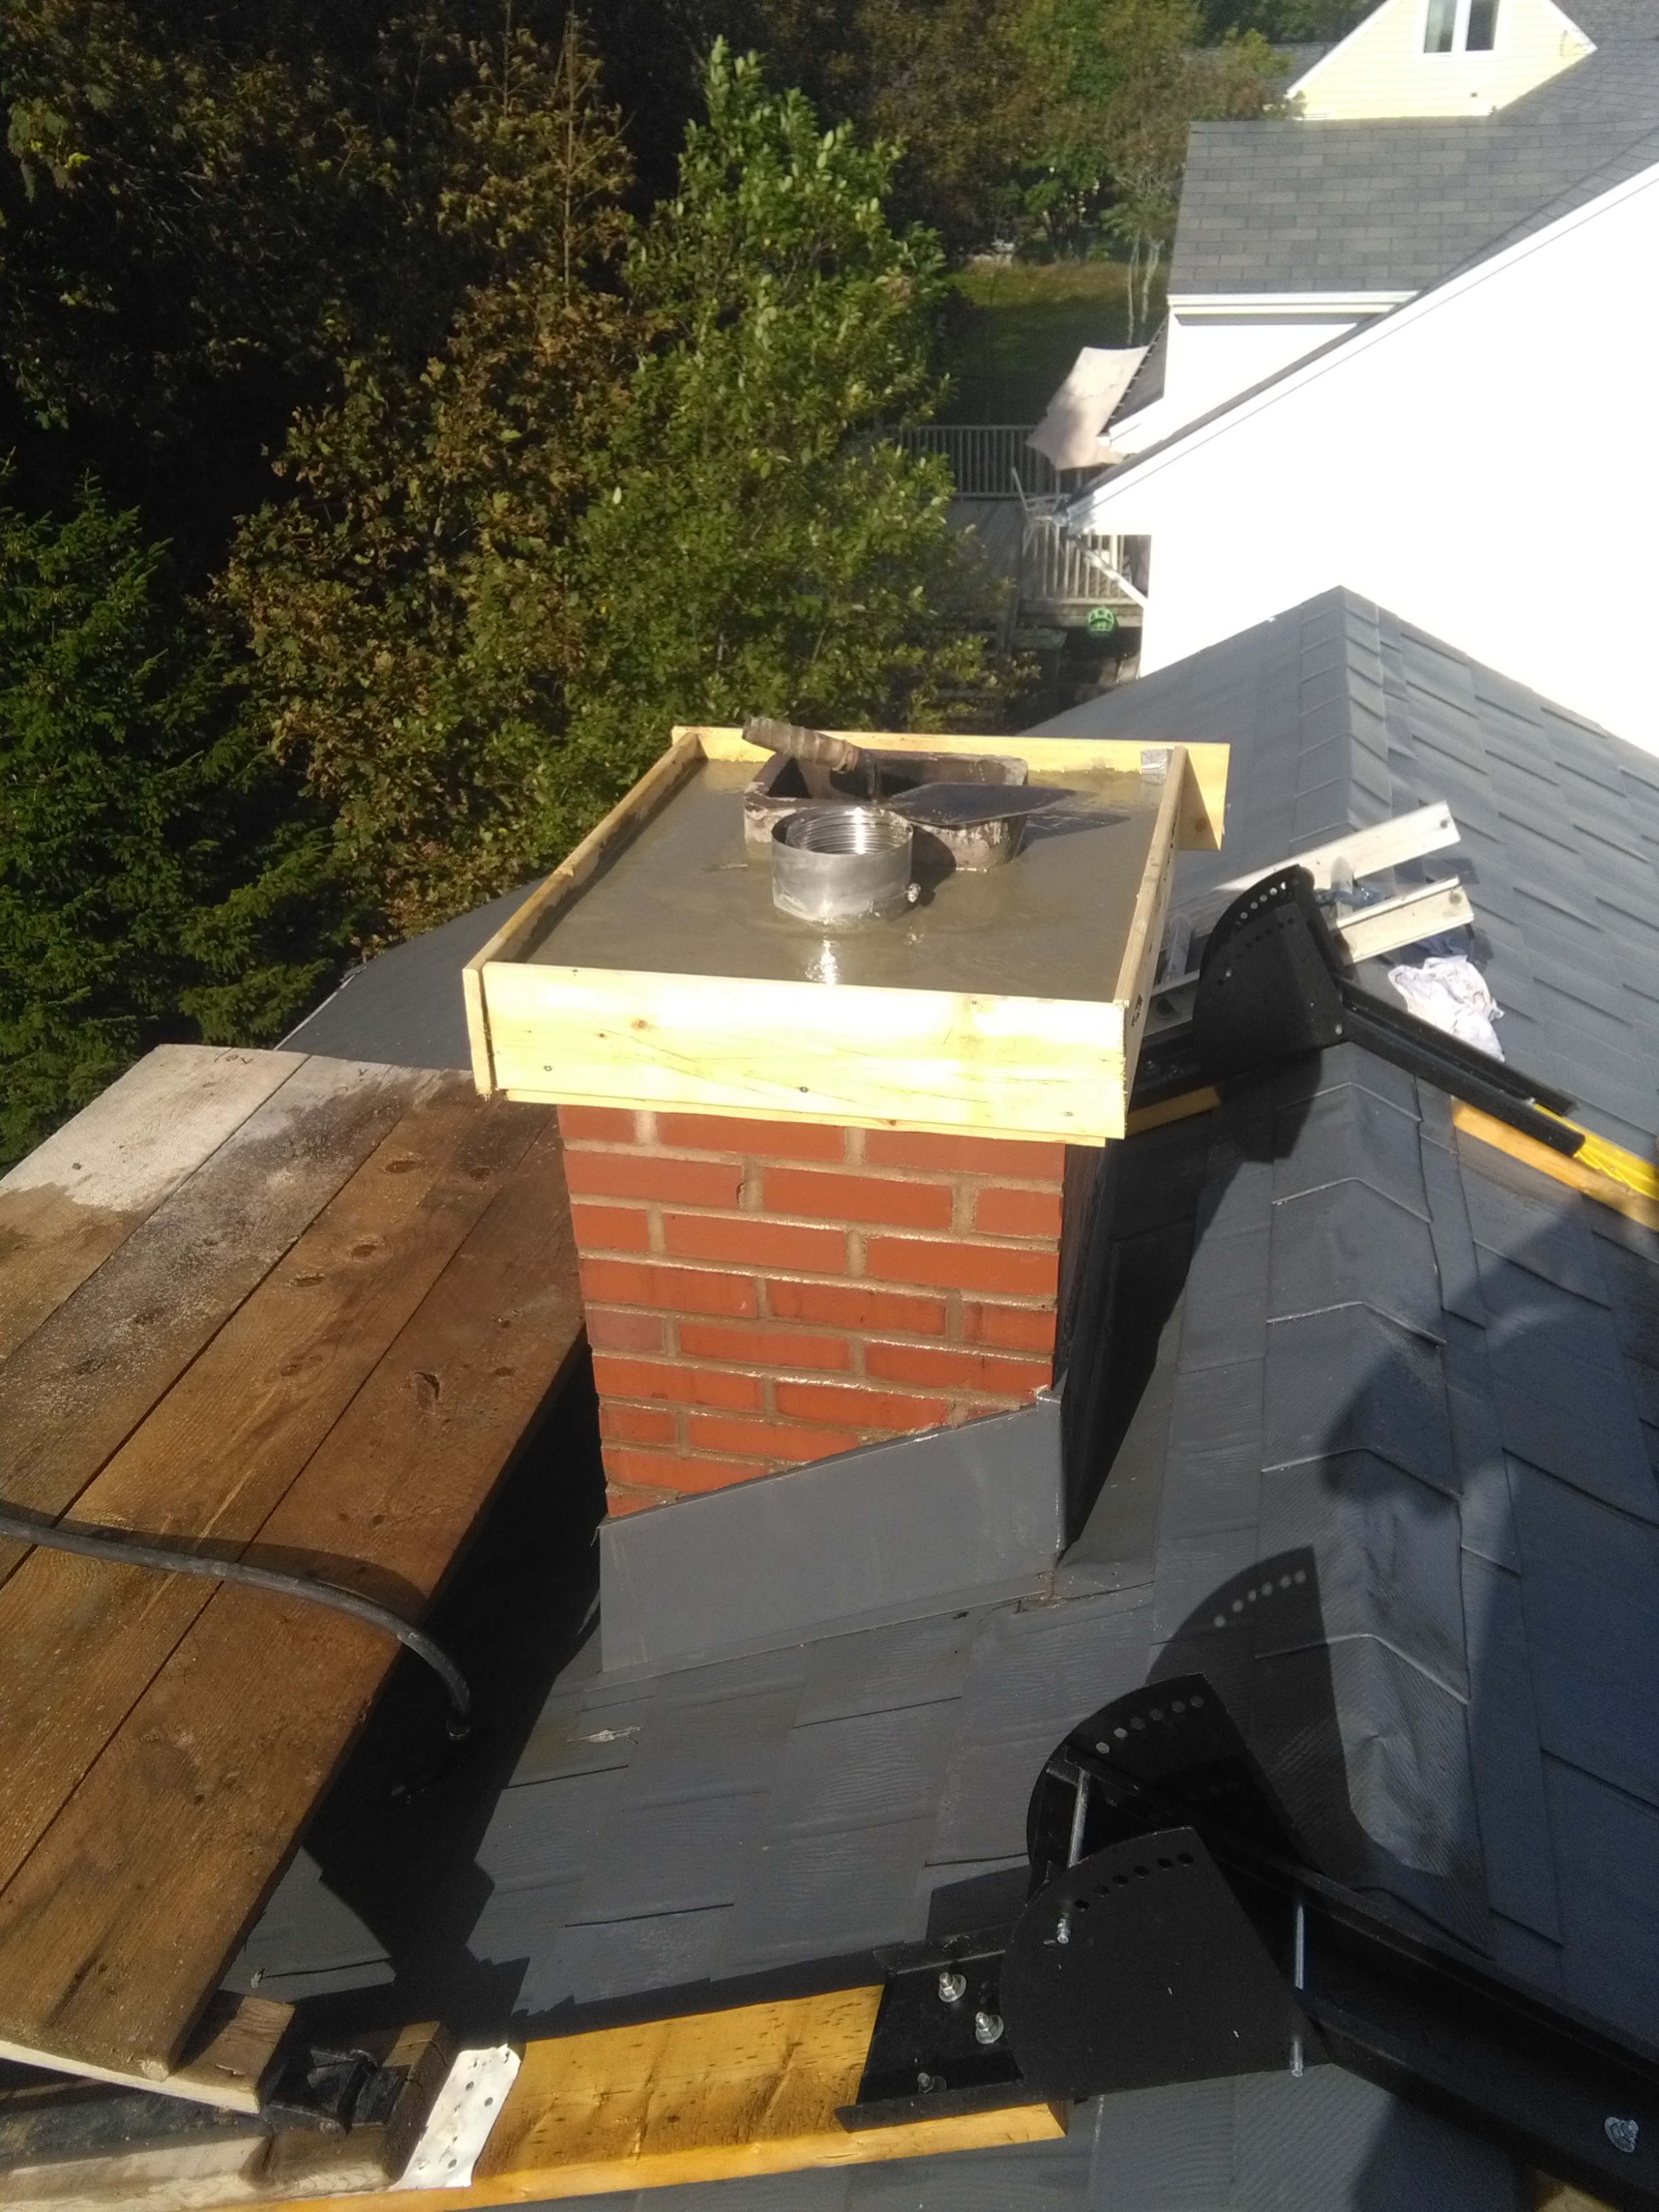 image of chimney construction-rebuild services completed in Halifax-Dartmouth Regional Municipality, NS by Pro Chimney Services based in Halifax, NS servicing all of the Halifax-Dartmouth Regional Municipality, Bedford, Sackville, Mount Uniacke, Windsor, Hantsport , Wolfville, Kentville, Chester, Mahone Bay, Lunenburg, Bridgewater, Liverpool, Fall River, Wellington, Enfield, Elmsdale, Brookfield, Truro, Musquodoboit Harbour & surrounding areas.